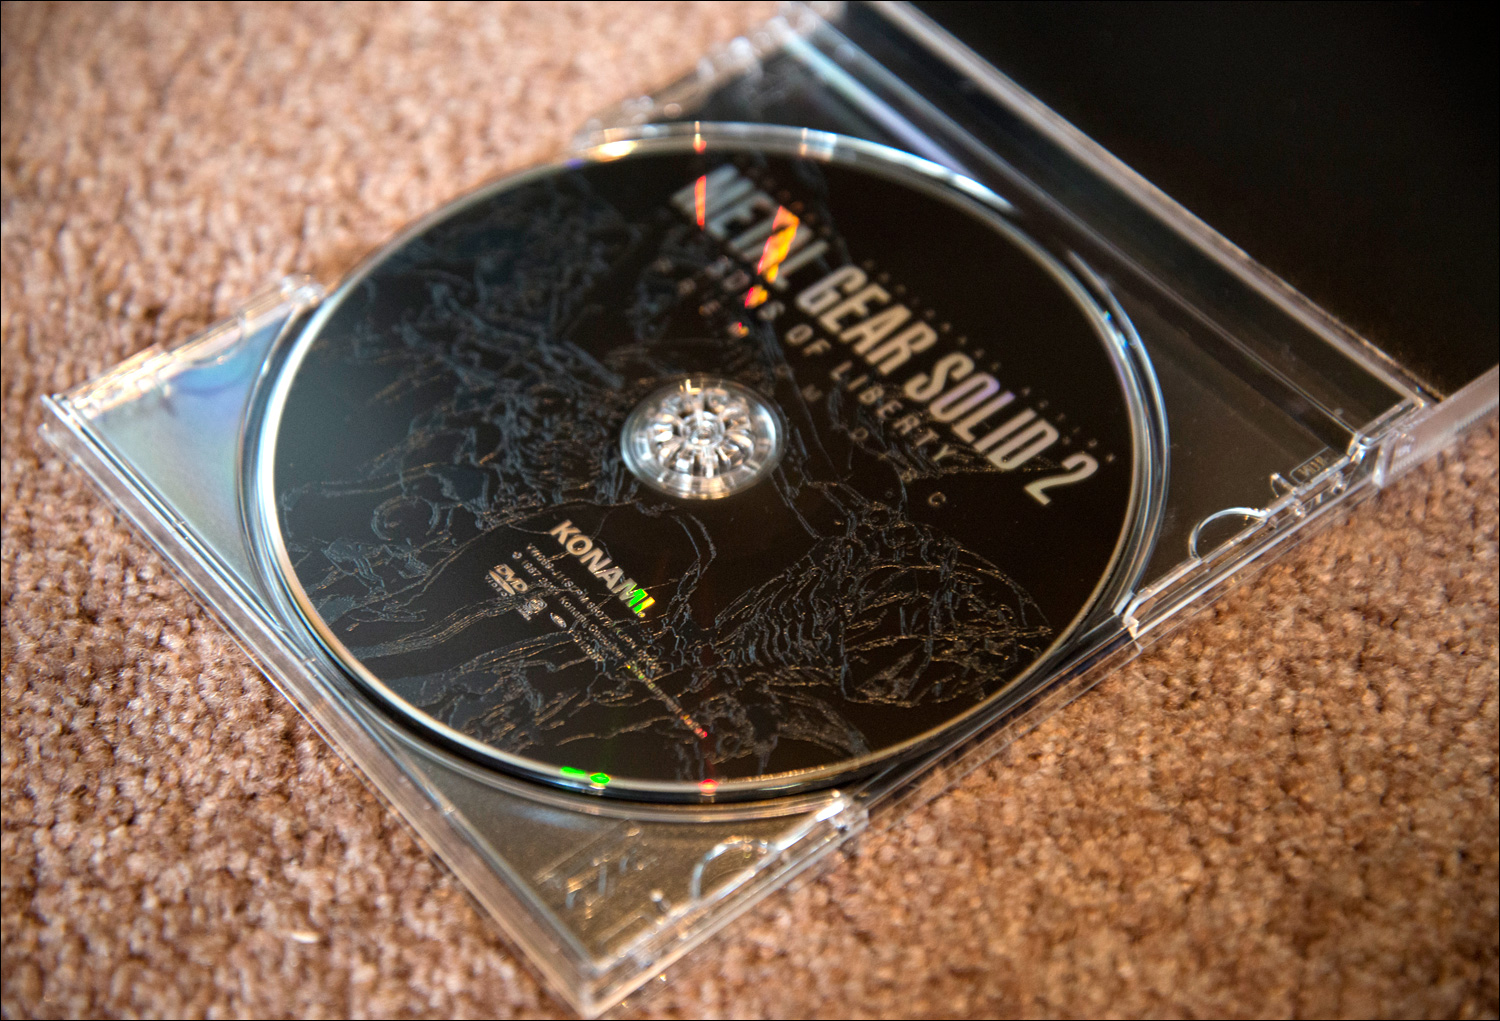 Metal-Gear-Solid-2-Sons-of-Liberty-Premium-Package-Premium-Disc-Open